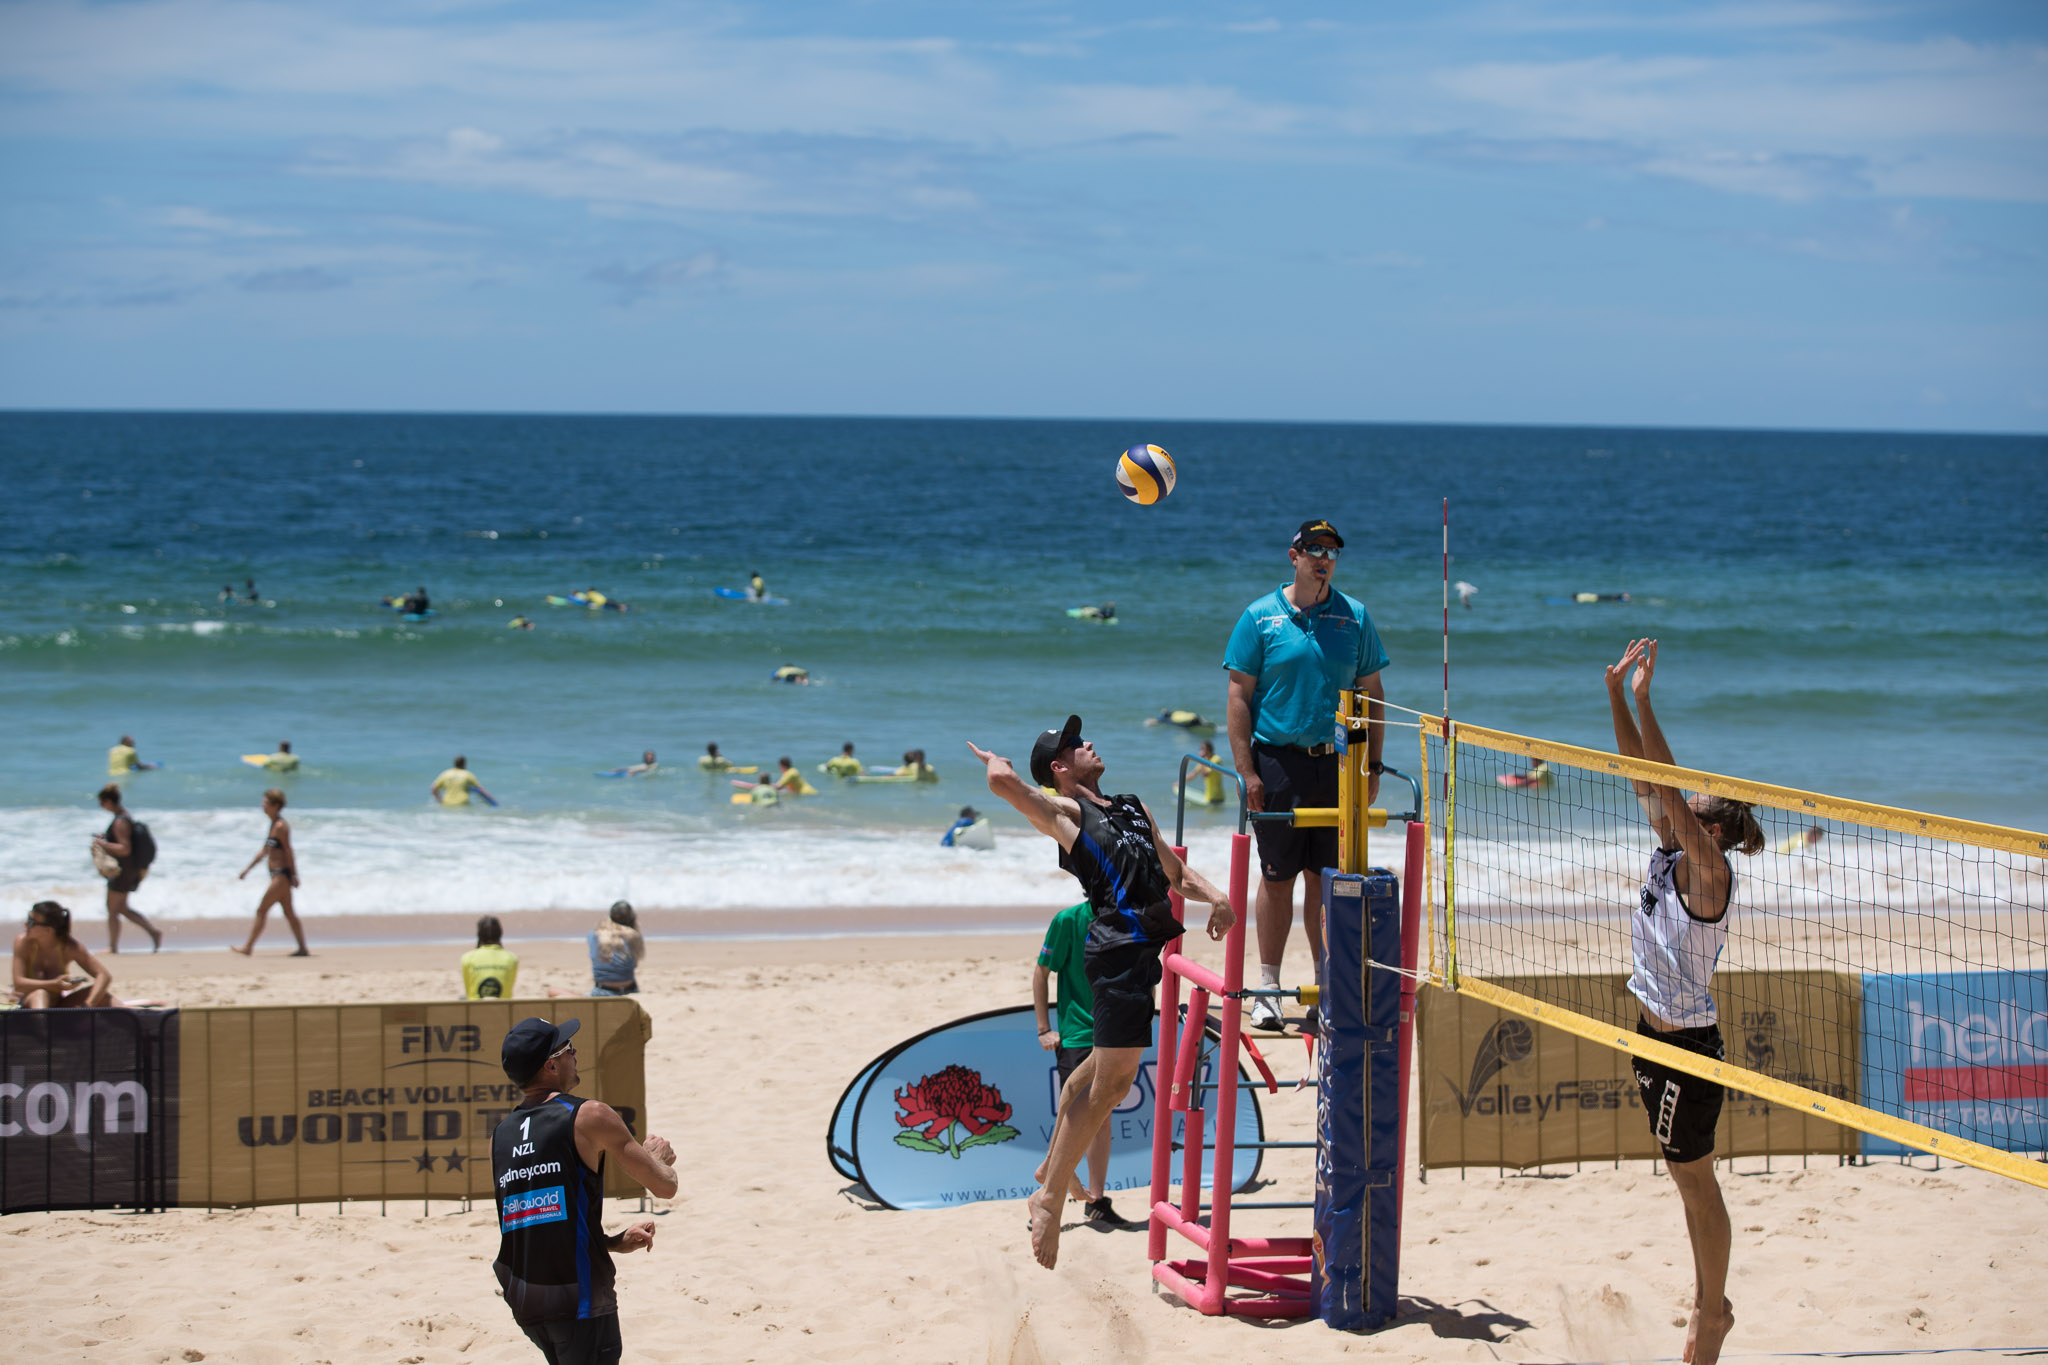 FIVB WORLD TOUR RETURNS TO MANLY BEACH